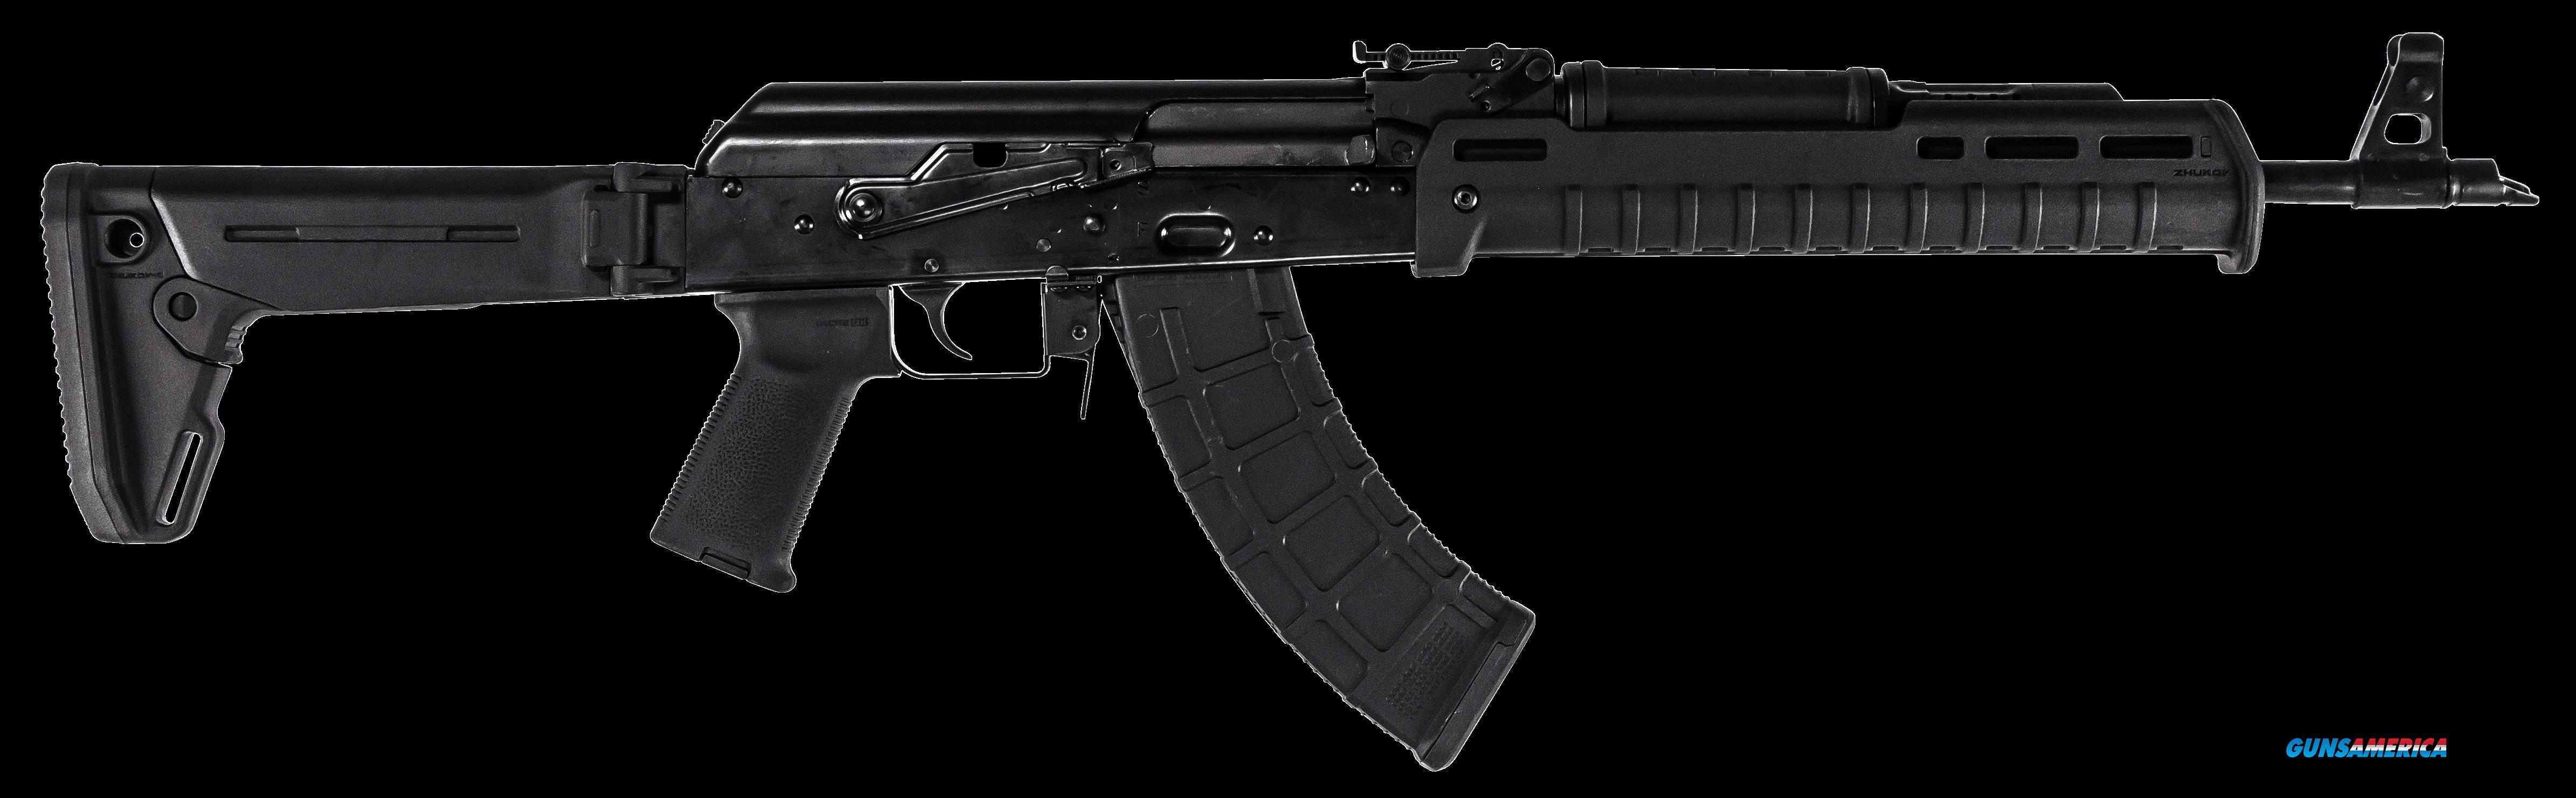 "Red Army Standard RI2405N RAS47 Zhukov Semi-Automatic 7.62x39mm 16.5"" MB 10+1 Magpul Zhukov-S Black  Guns > Rifles > R Misc Rifles"